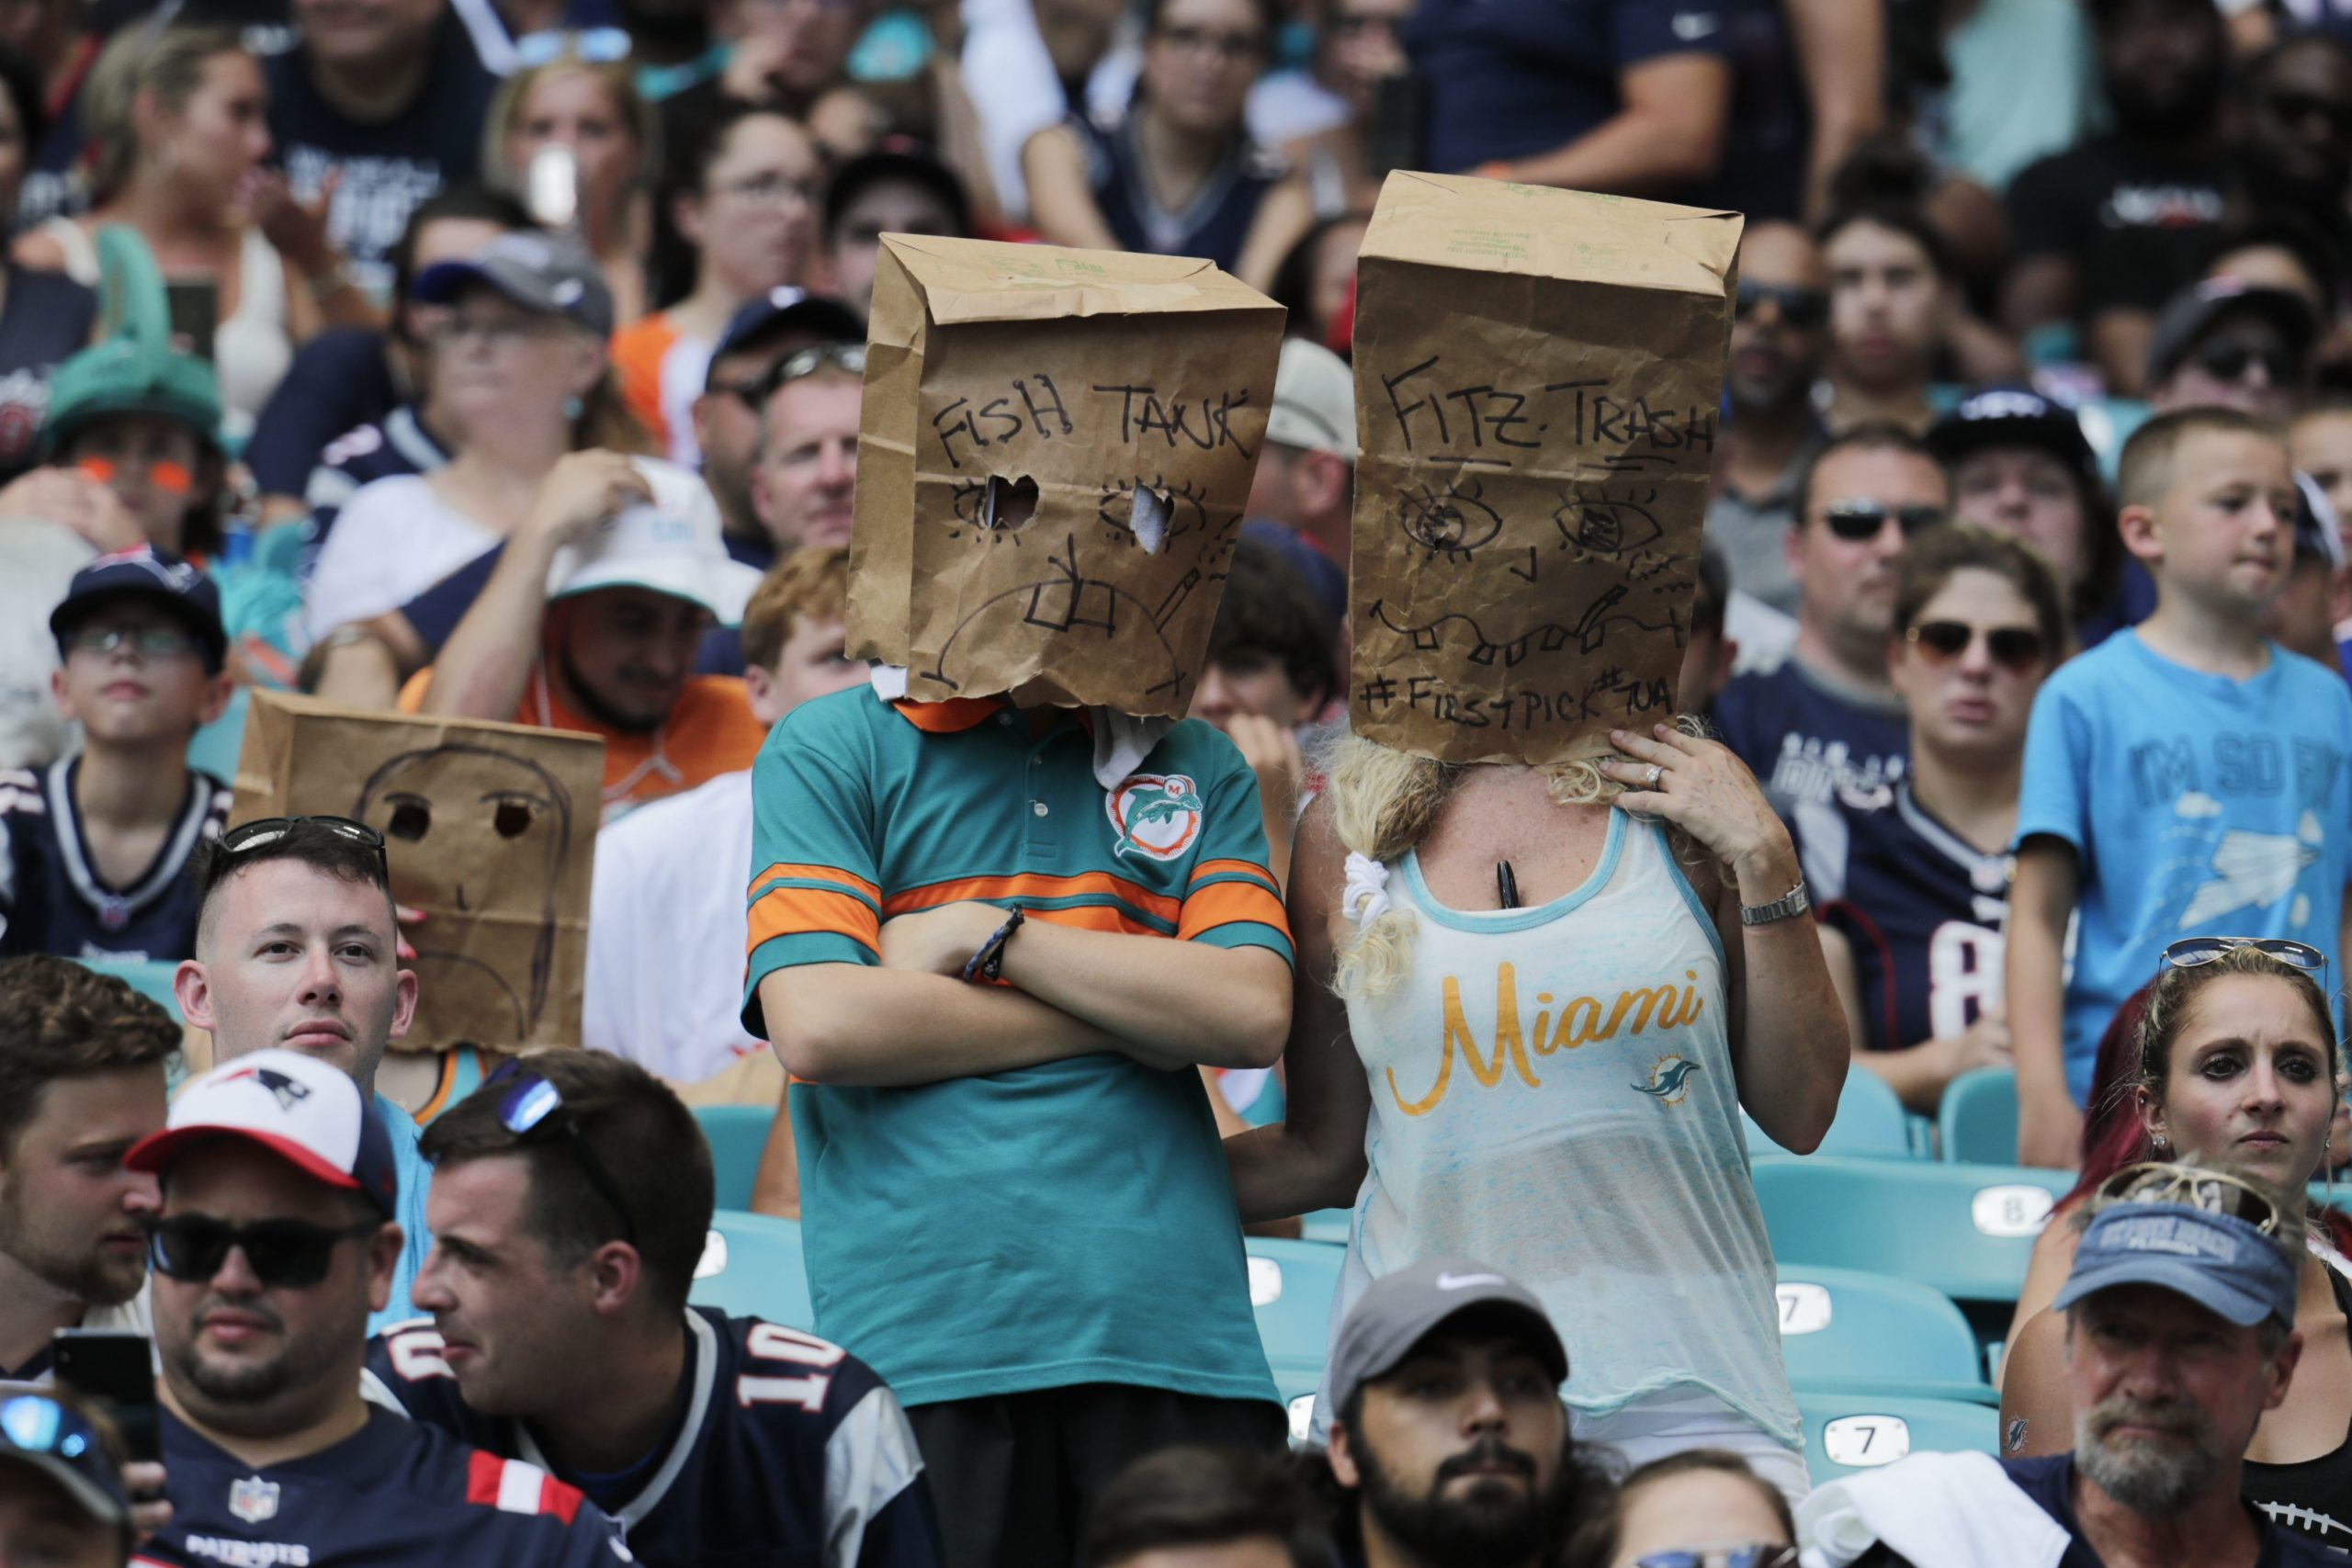 Have The Dolphins Destroyed Their Grand Plan?